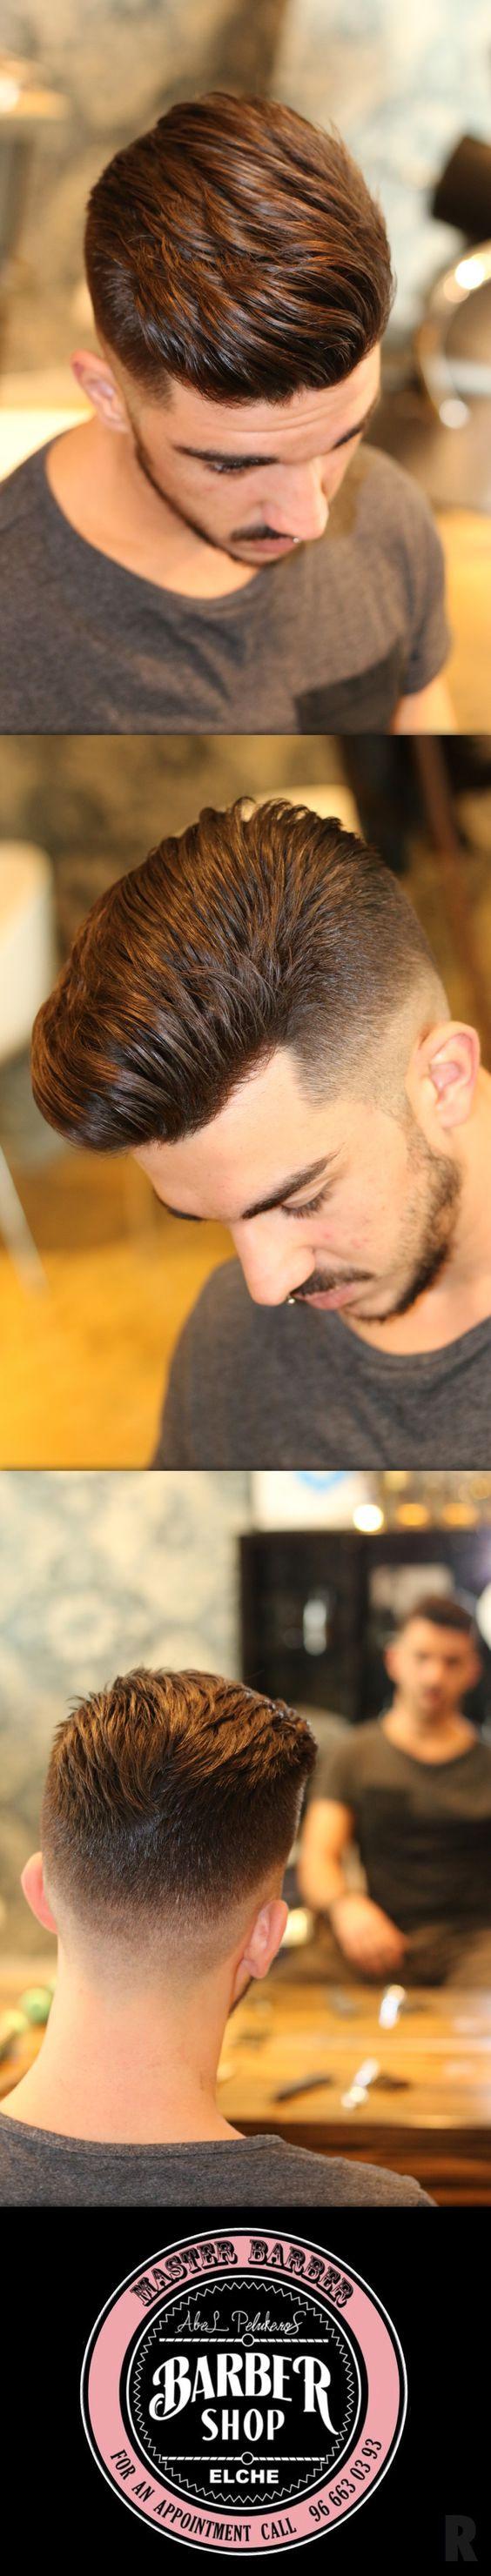 Different types of mens haircuts  best images about haircuts for men on pinterest   instagram